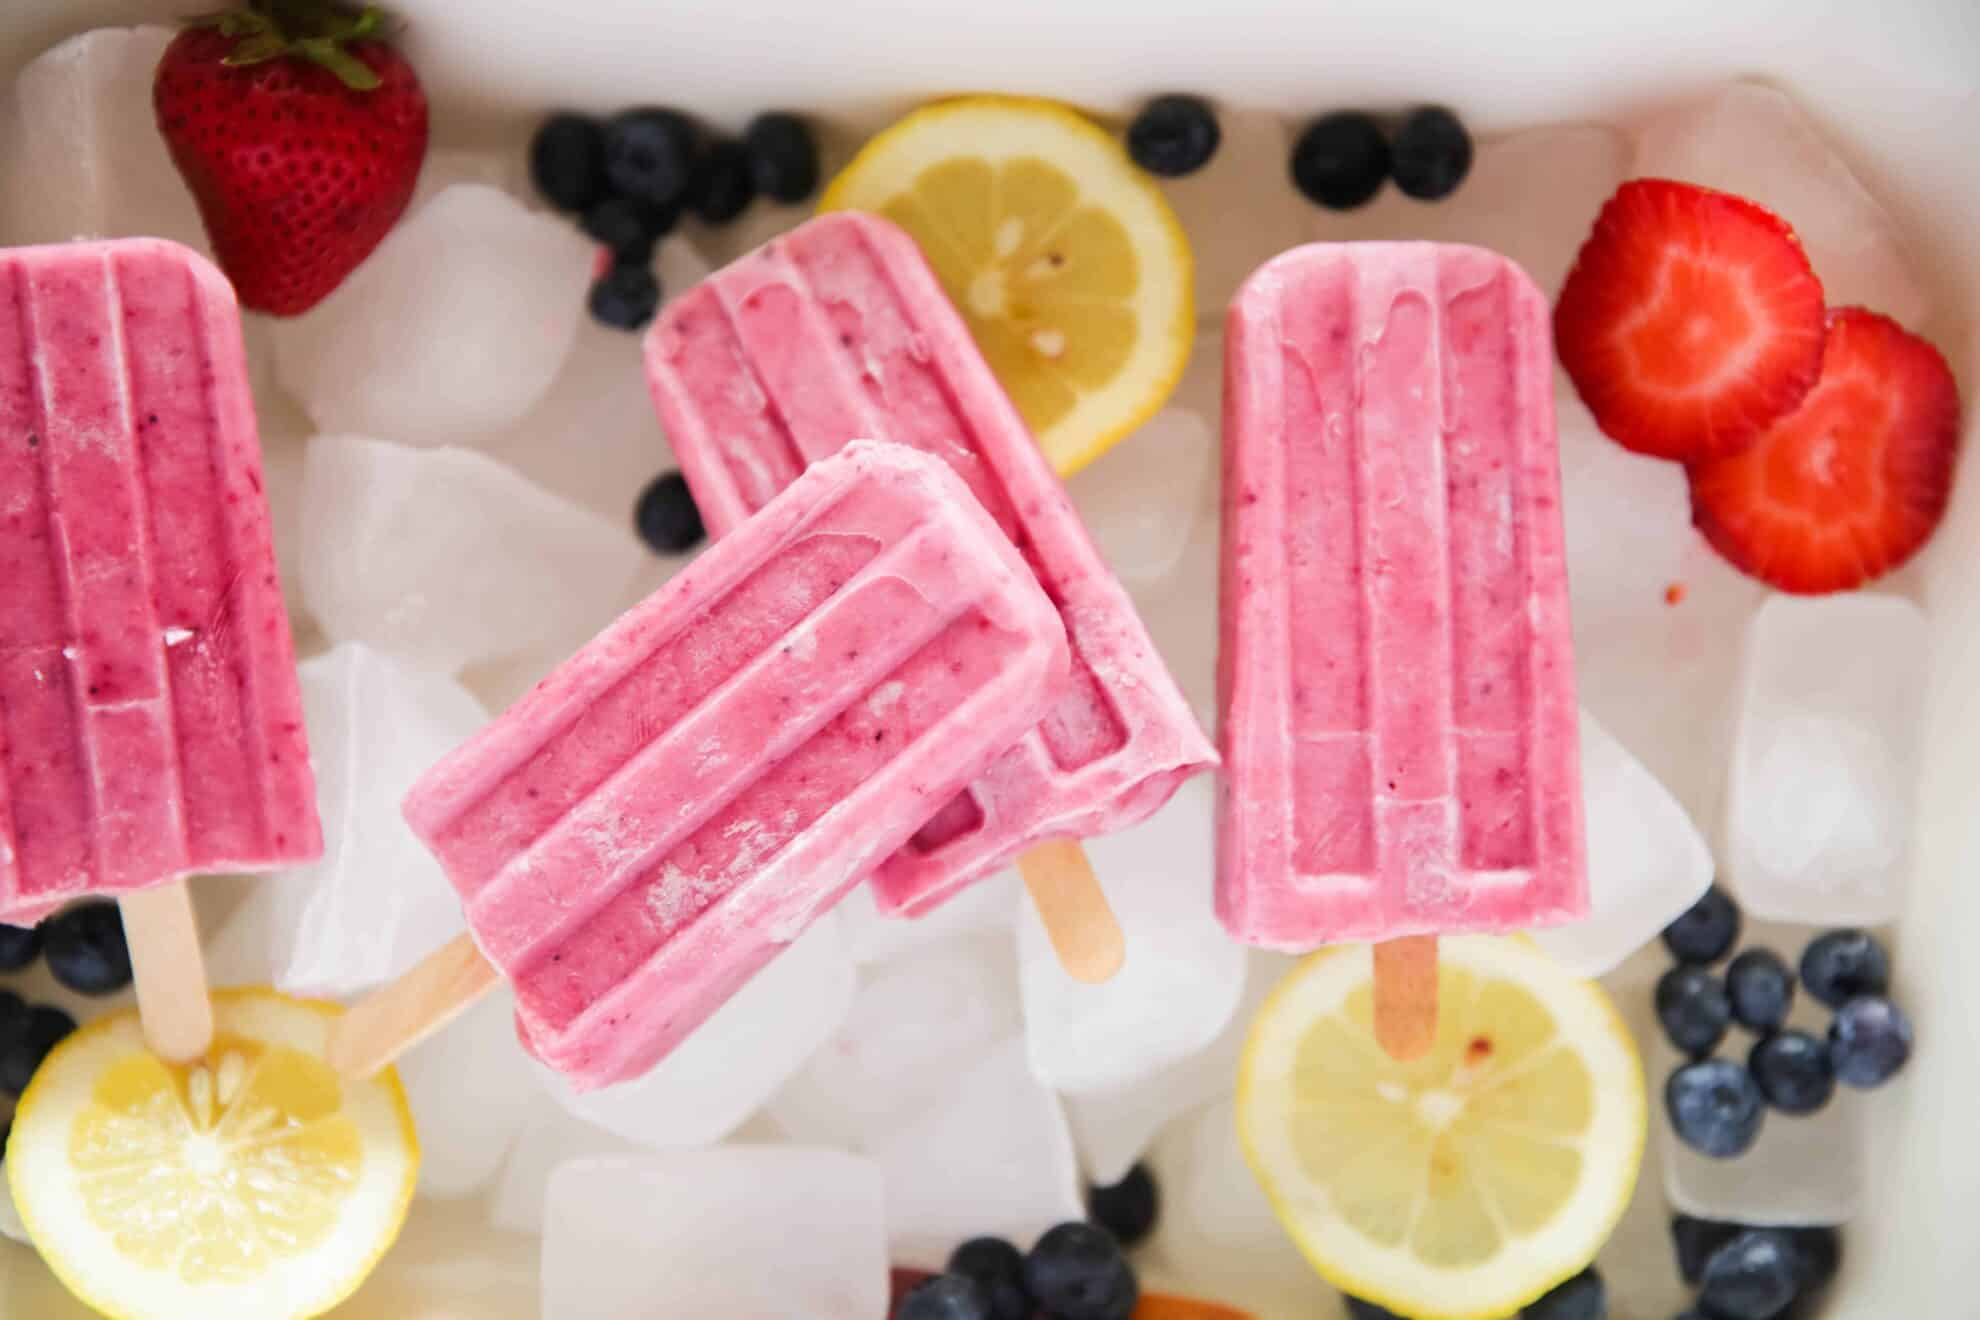 berries lemon slices and pink popsicles on ice